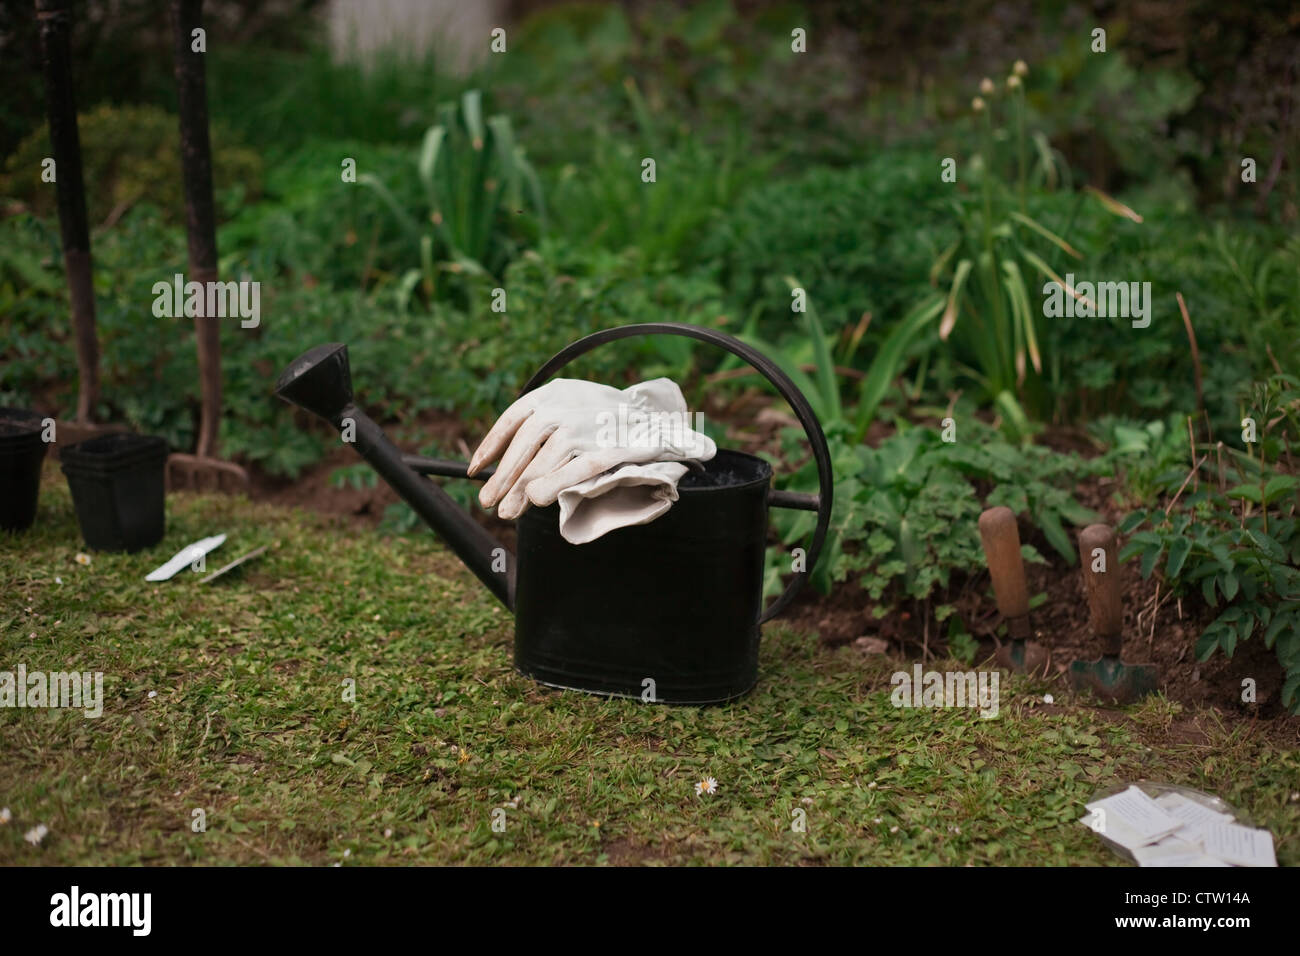 Preparing mixed herbaceous border for annual seed sowing, April, UK - Stock Image